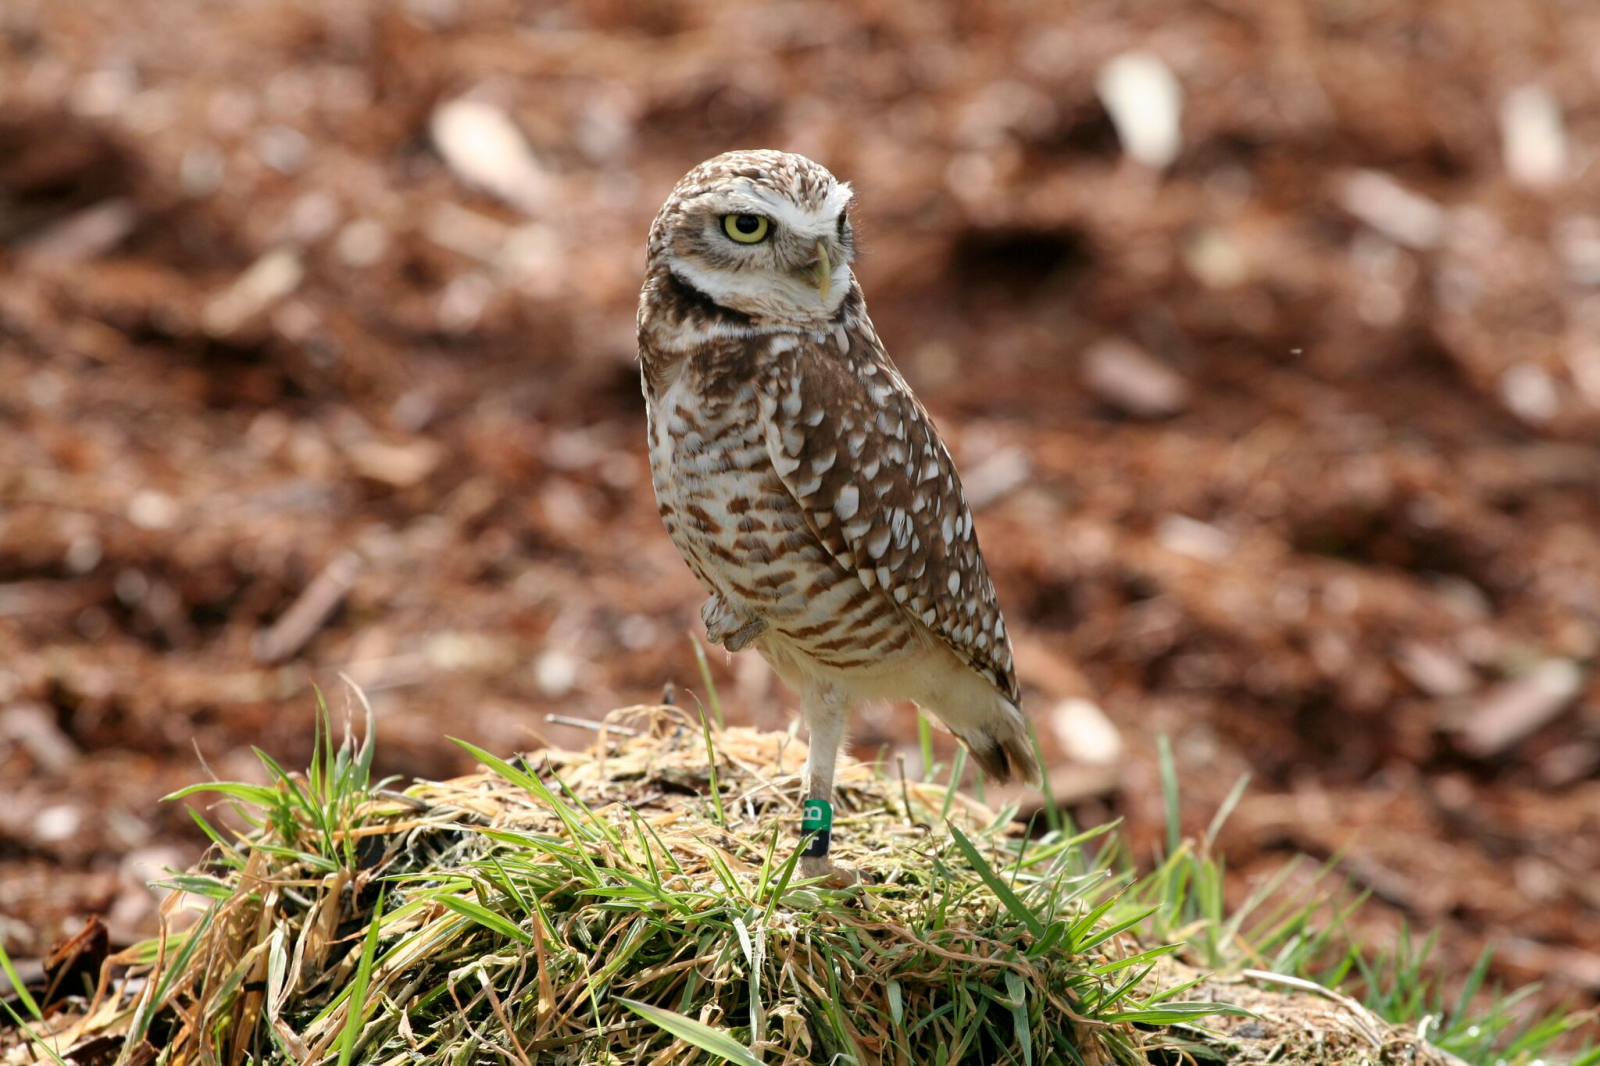 A burrowing owl in B.C. Photo by Burrowing Owl Winery